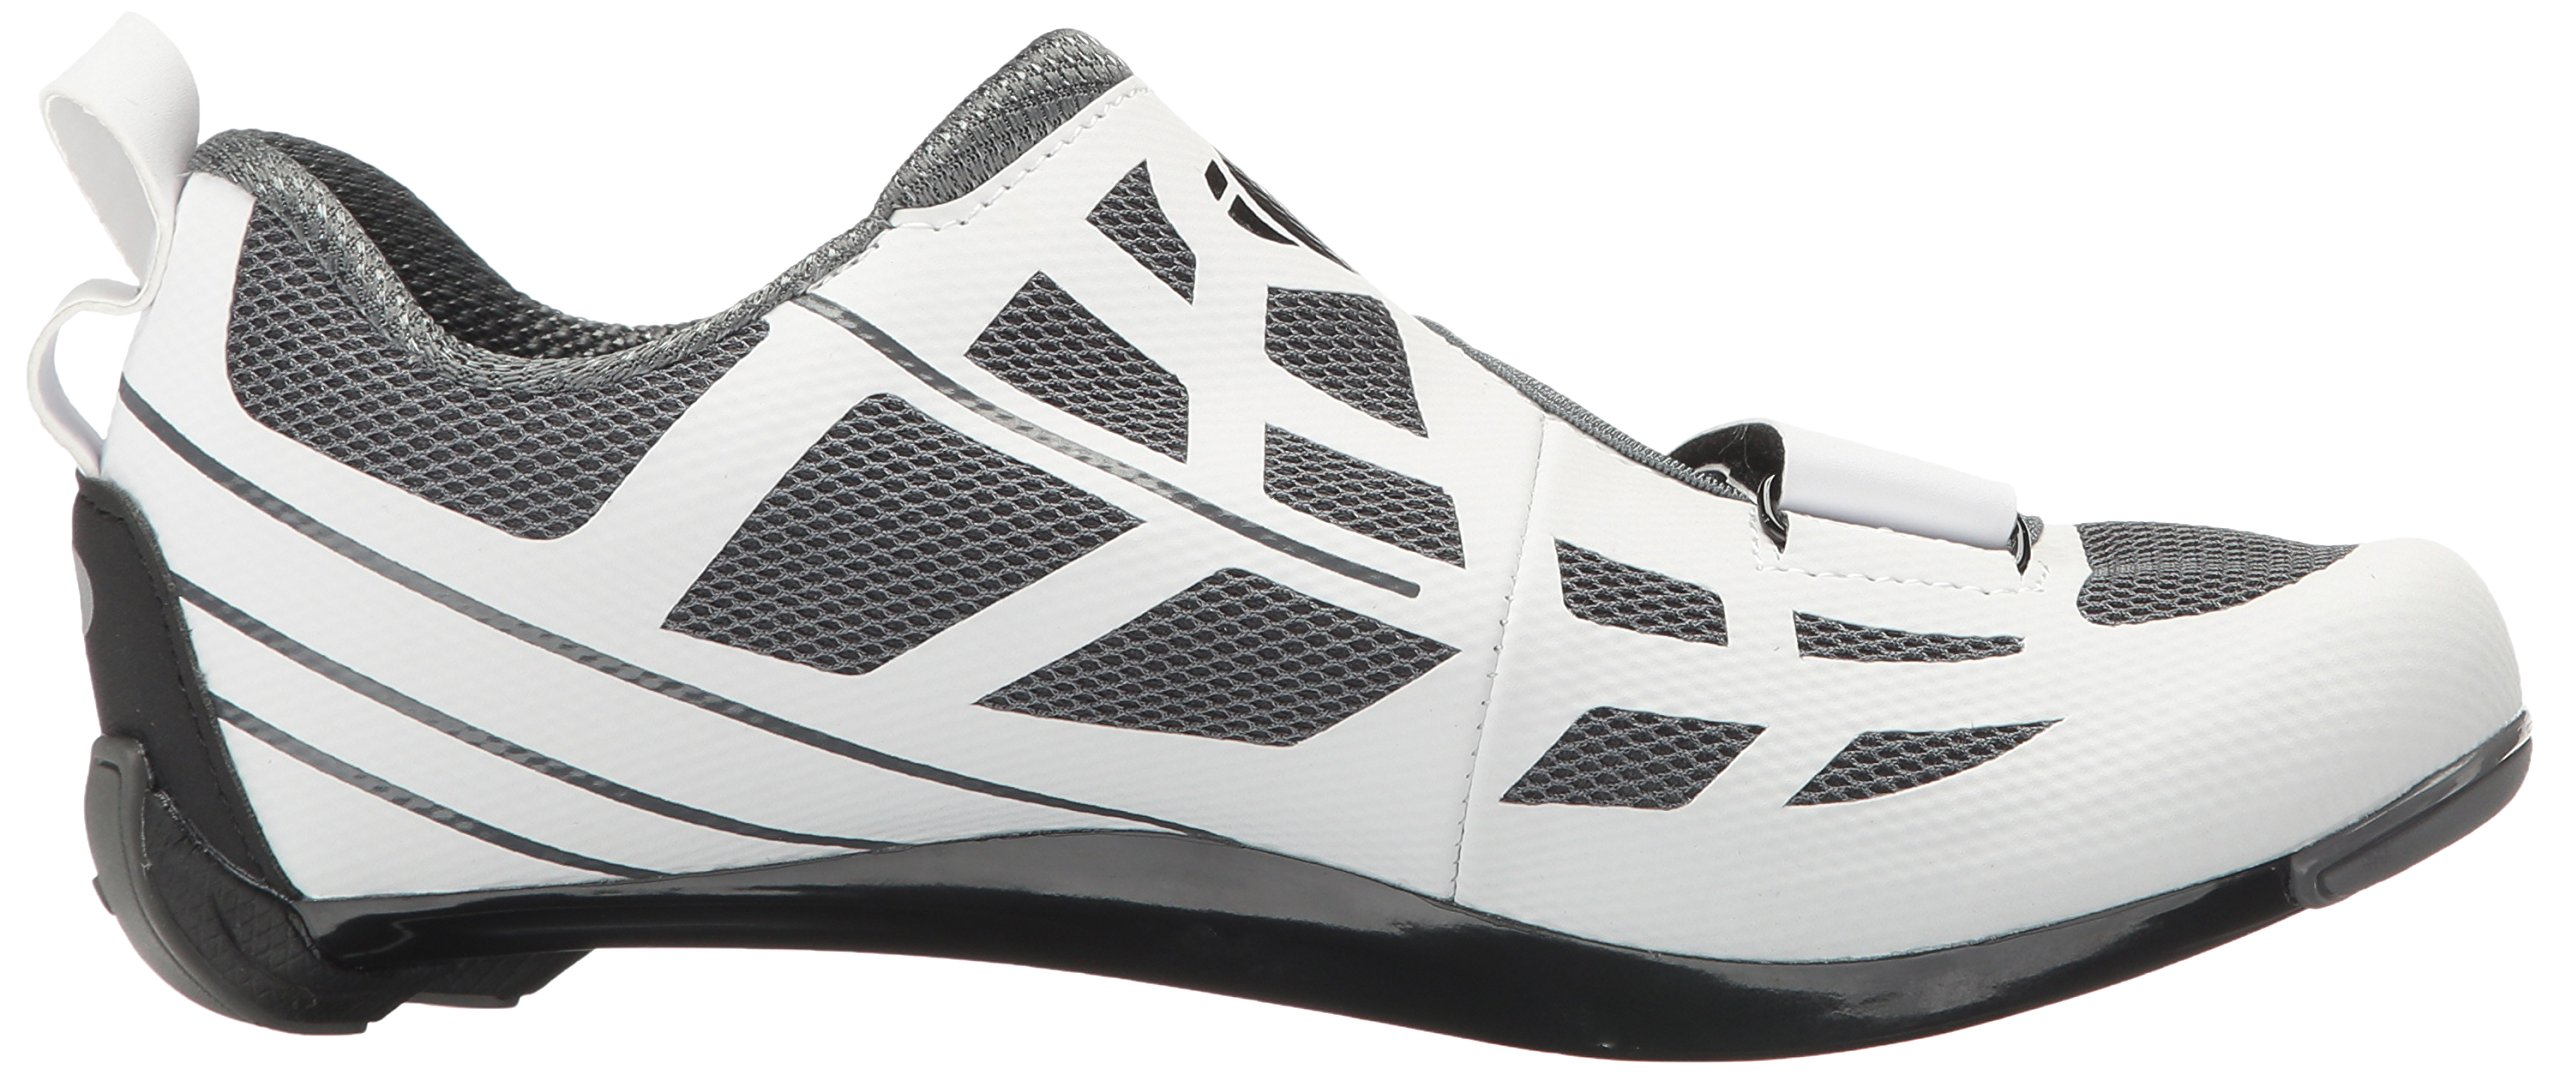 Pearl iZUMi Women's W Tri Fly Select V6 Cycling Shoe, White/Shadow Grey, 42 EU/10 B US by Pearl iZUMi (Image #7)